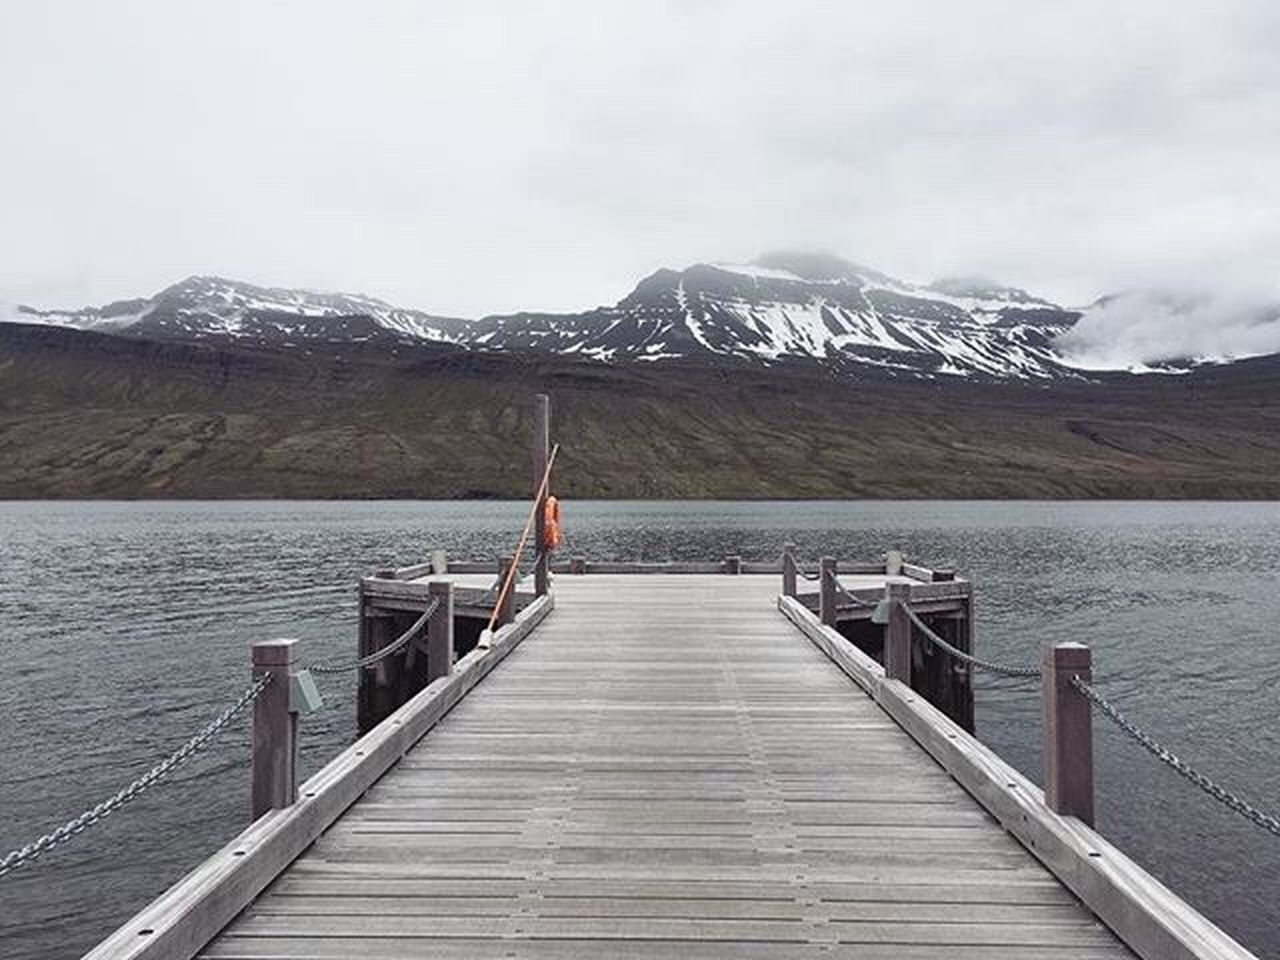 Landscape Travel Mountain Water Snow Hiking Vacations Outdoors Travel Destinations Wilderness Sea Nature No People Scenics Beauty In Nature Adventure Outdoor Pursuit Day Wheelchair Access Islande Iceland